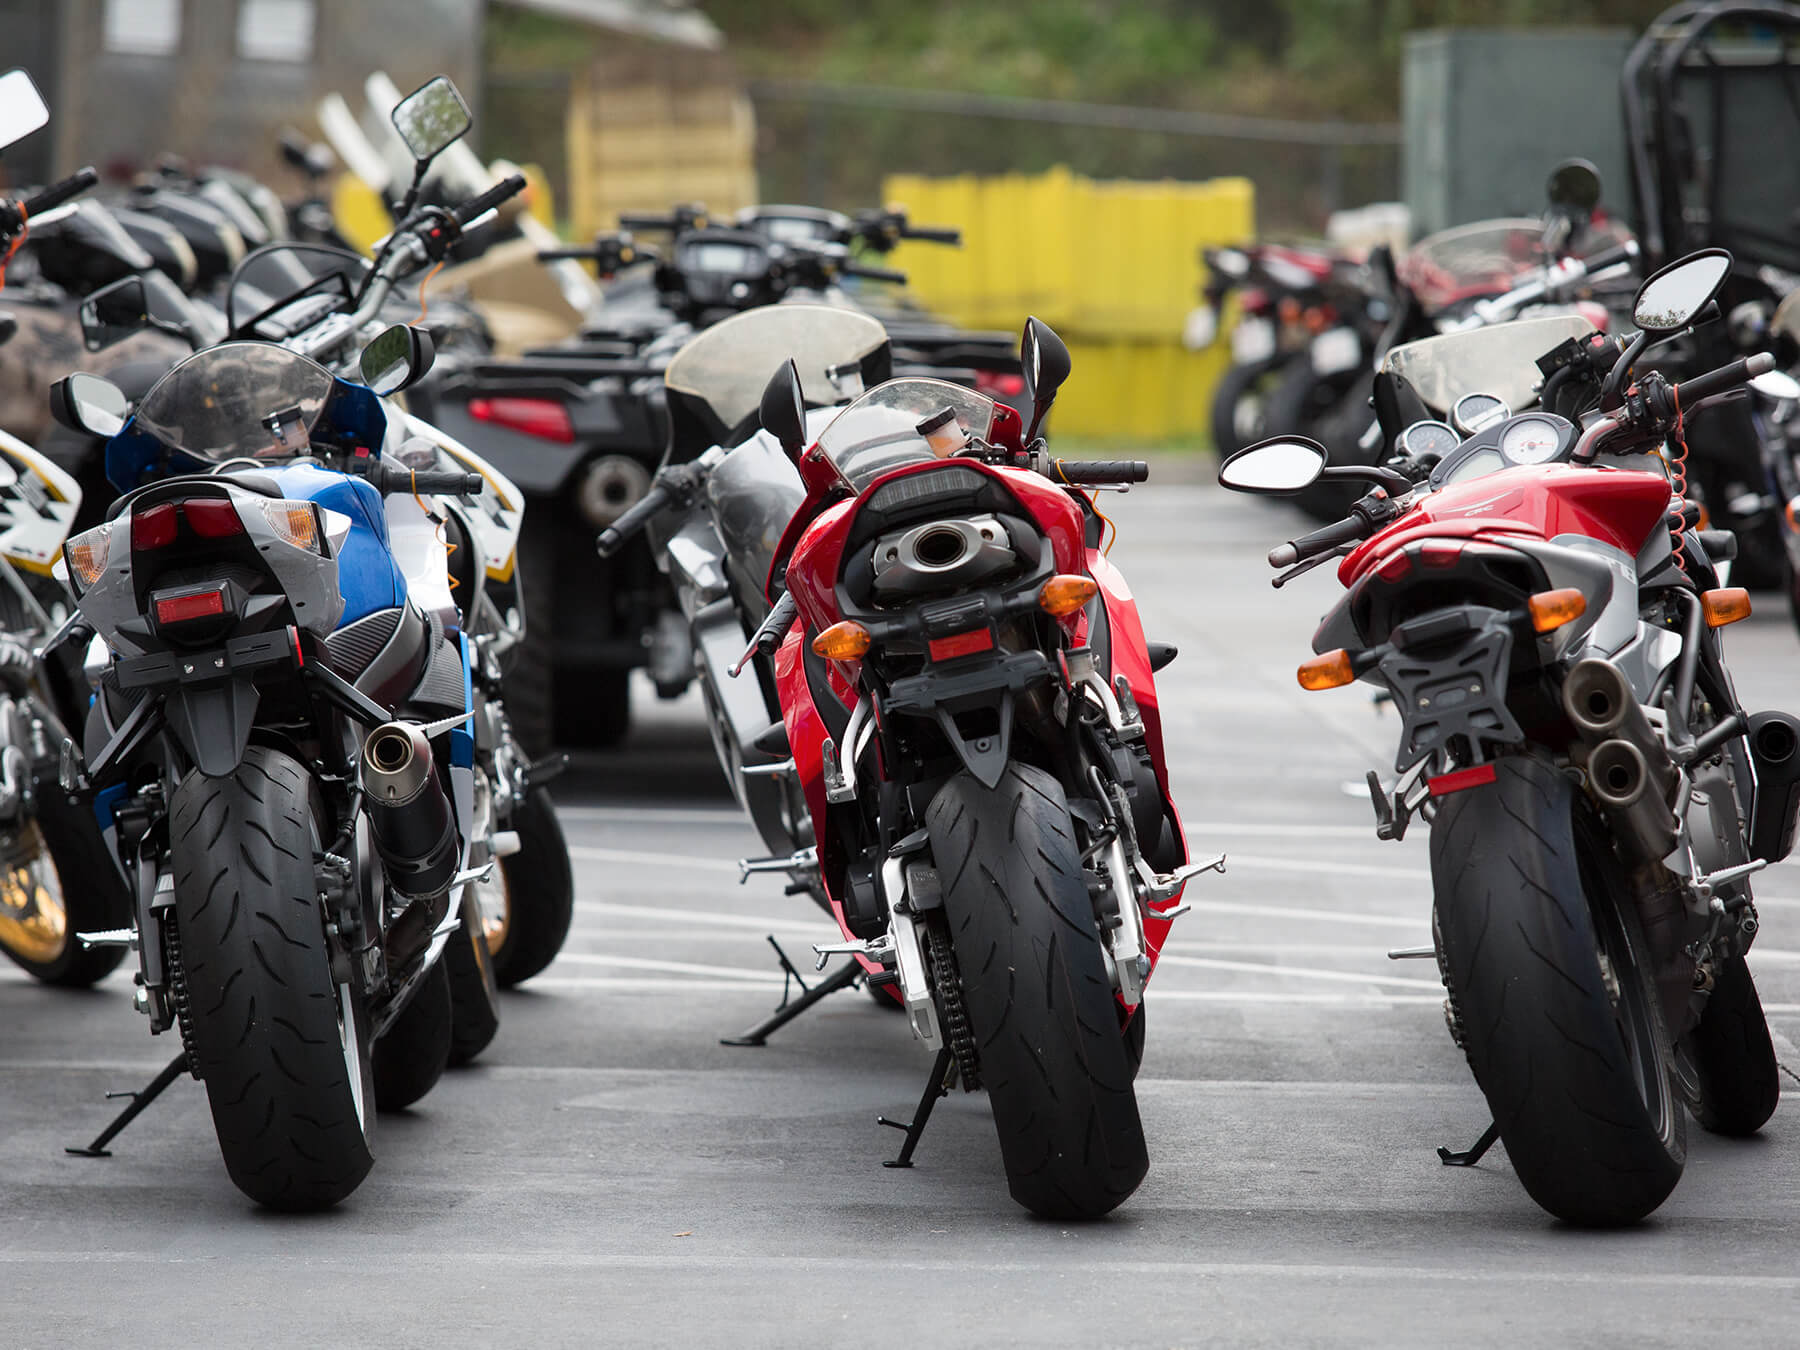 Exterior photo of motorcycles